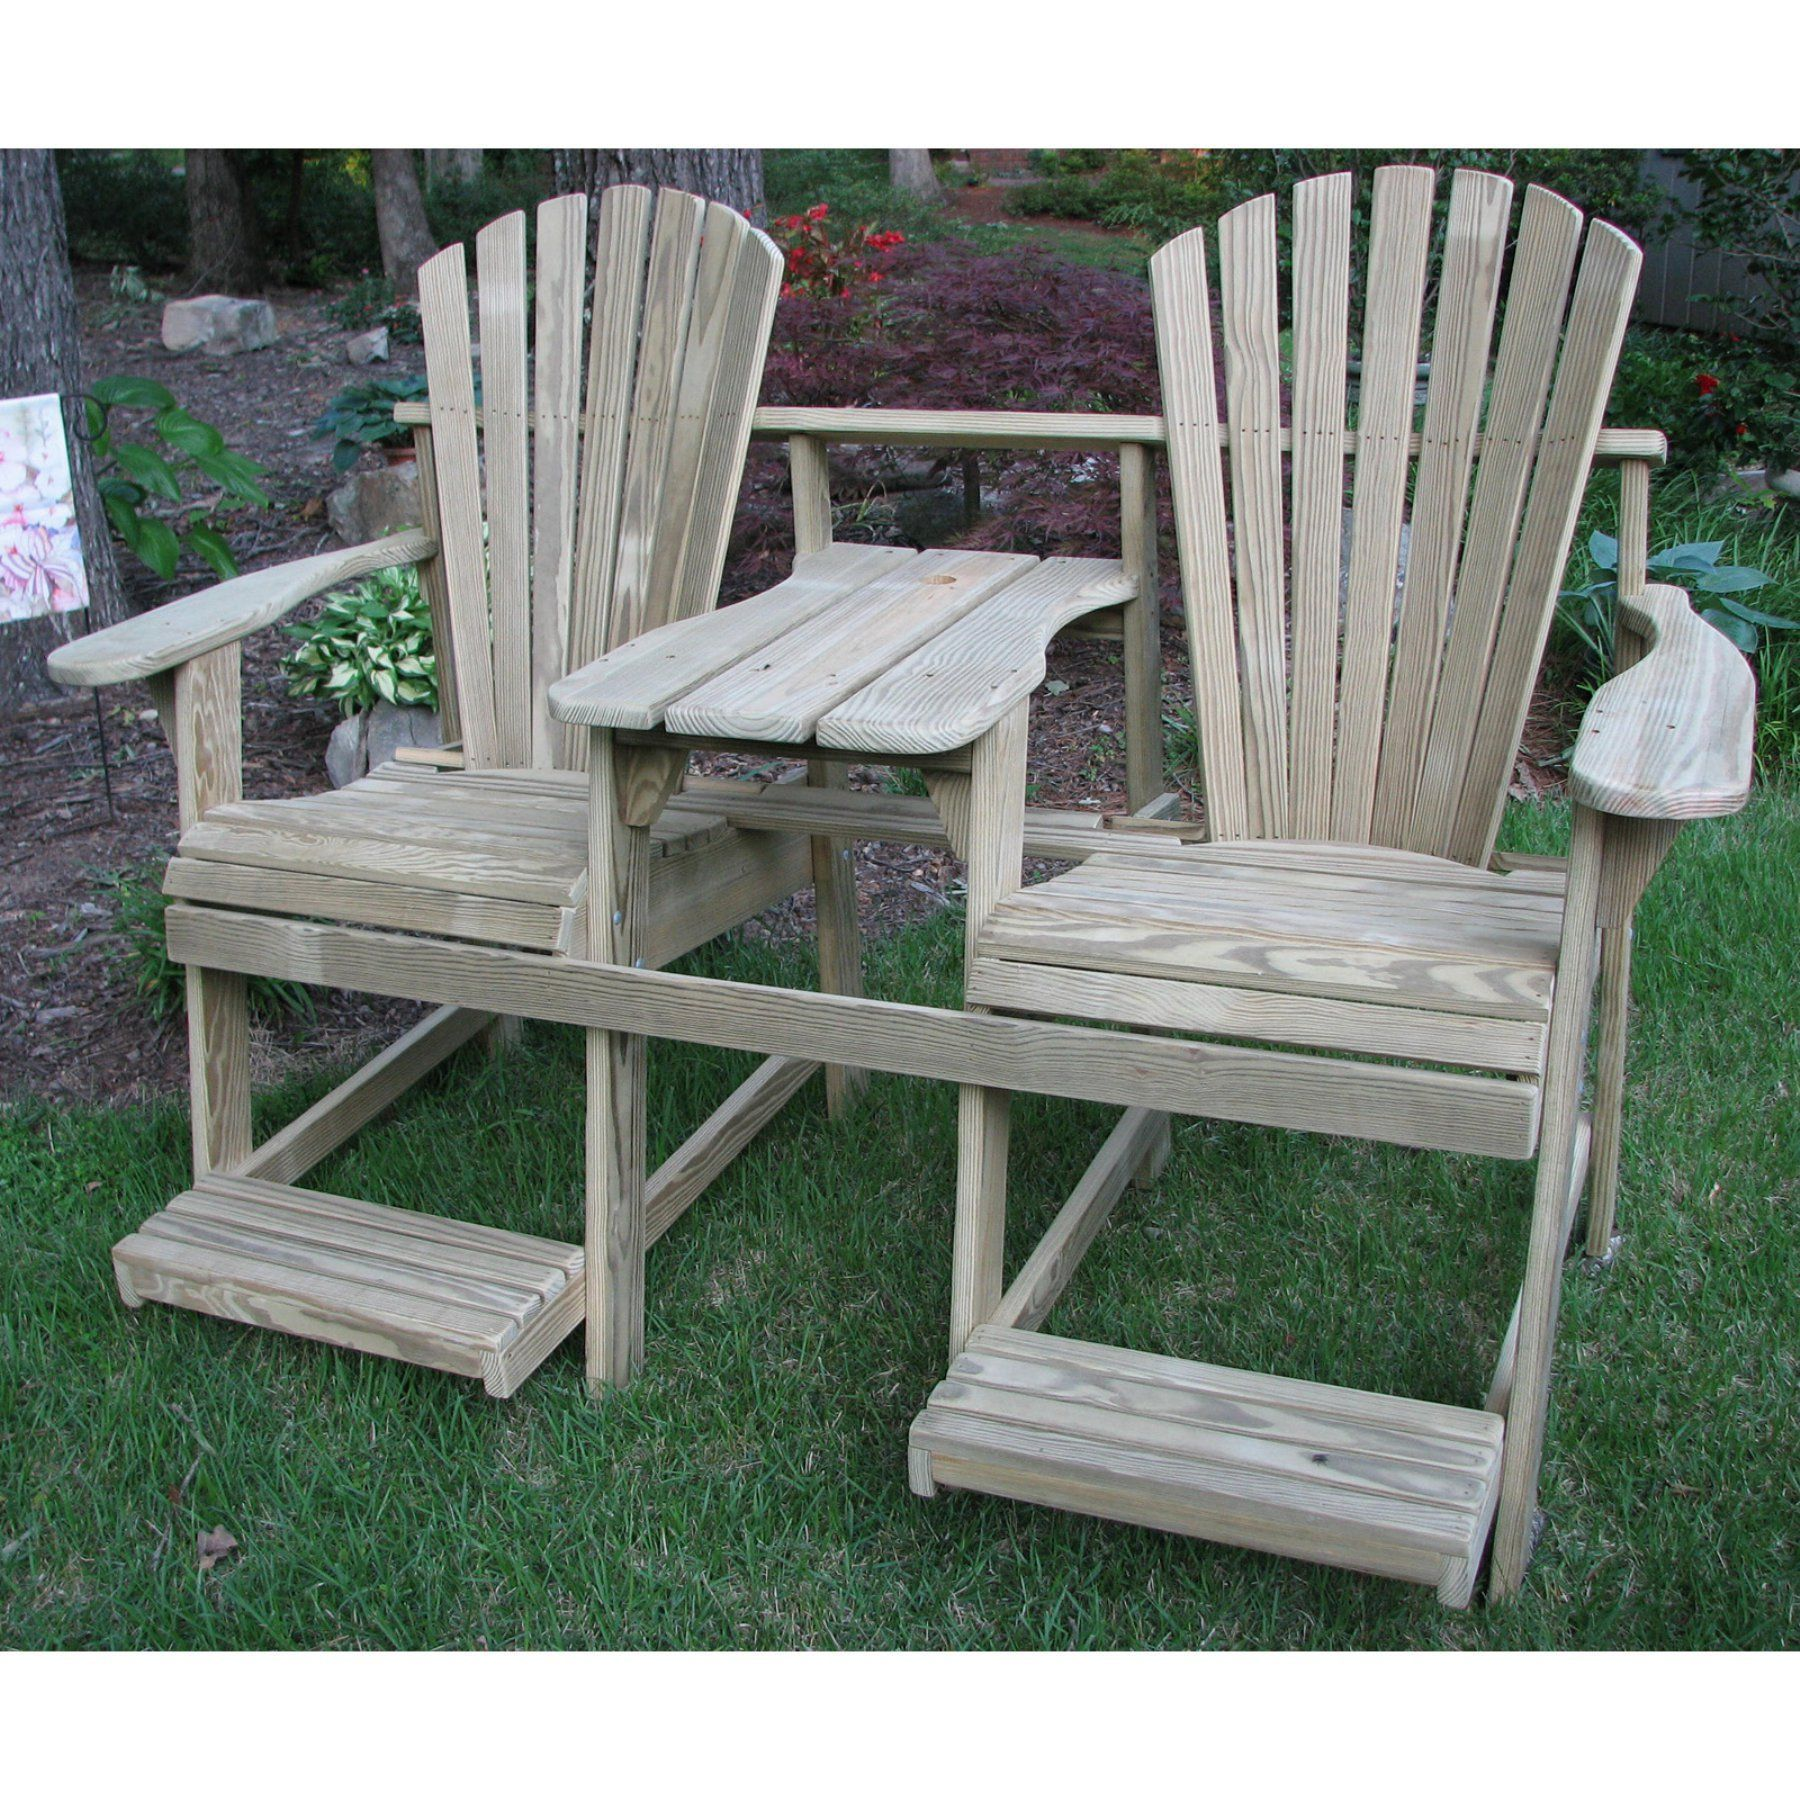 Outdoor Weathercraft Adirondack Double Seater Balcony Height Tete A With Umbrella Hole